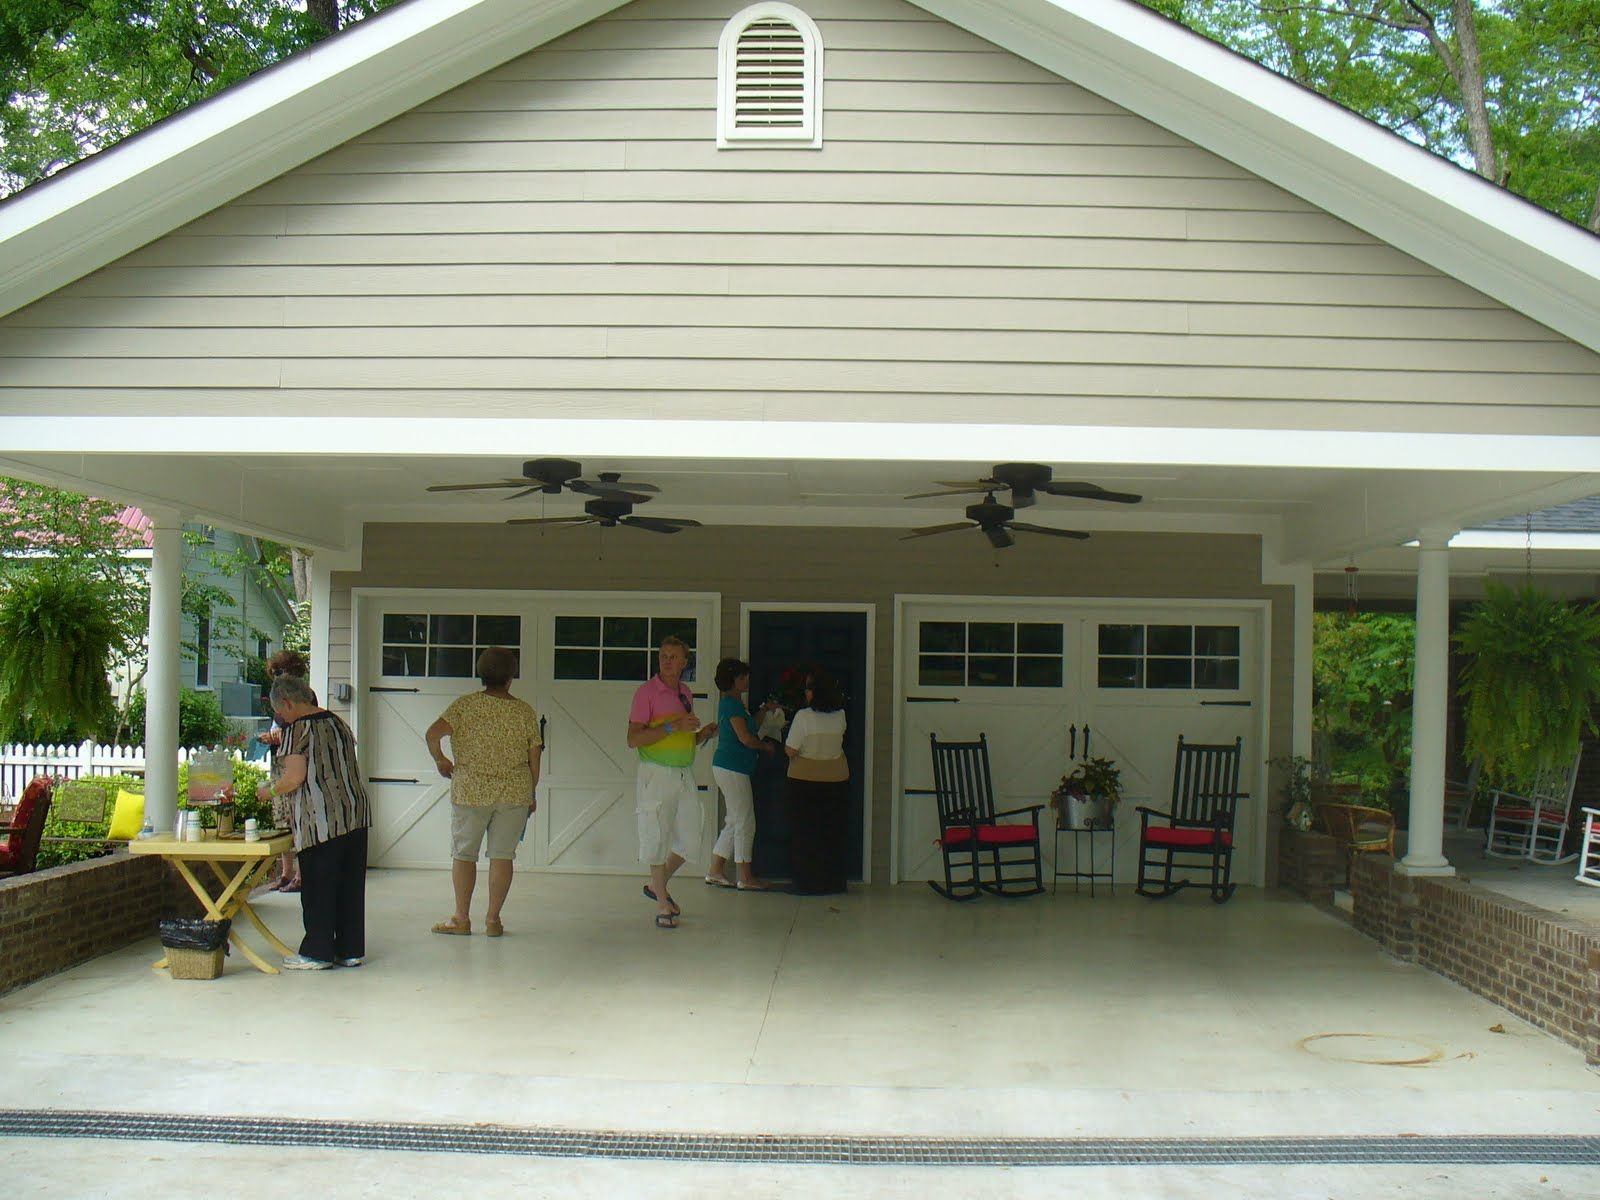 Open Carport With Storage Space Copyright C 2011 2013